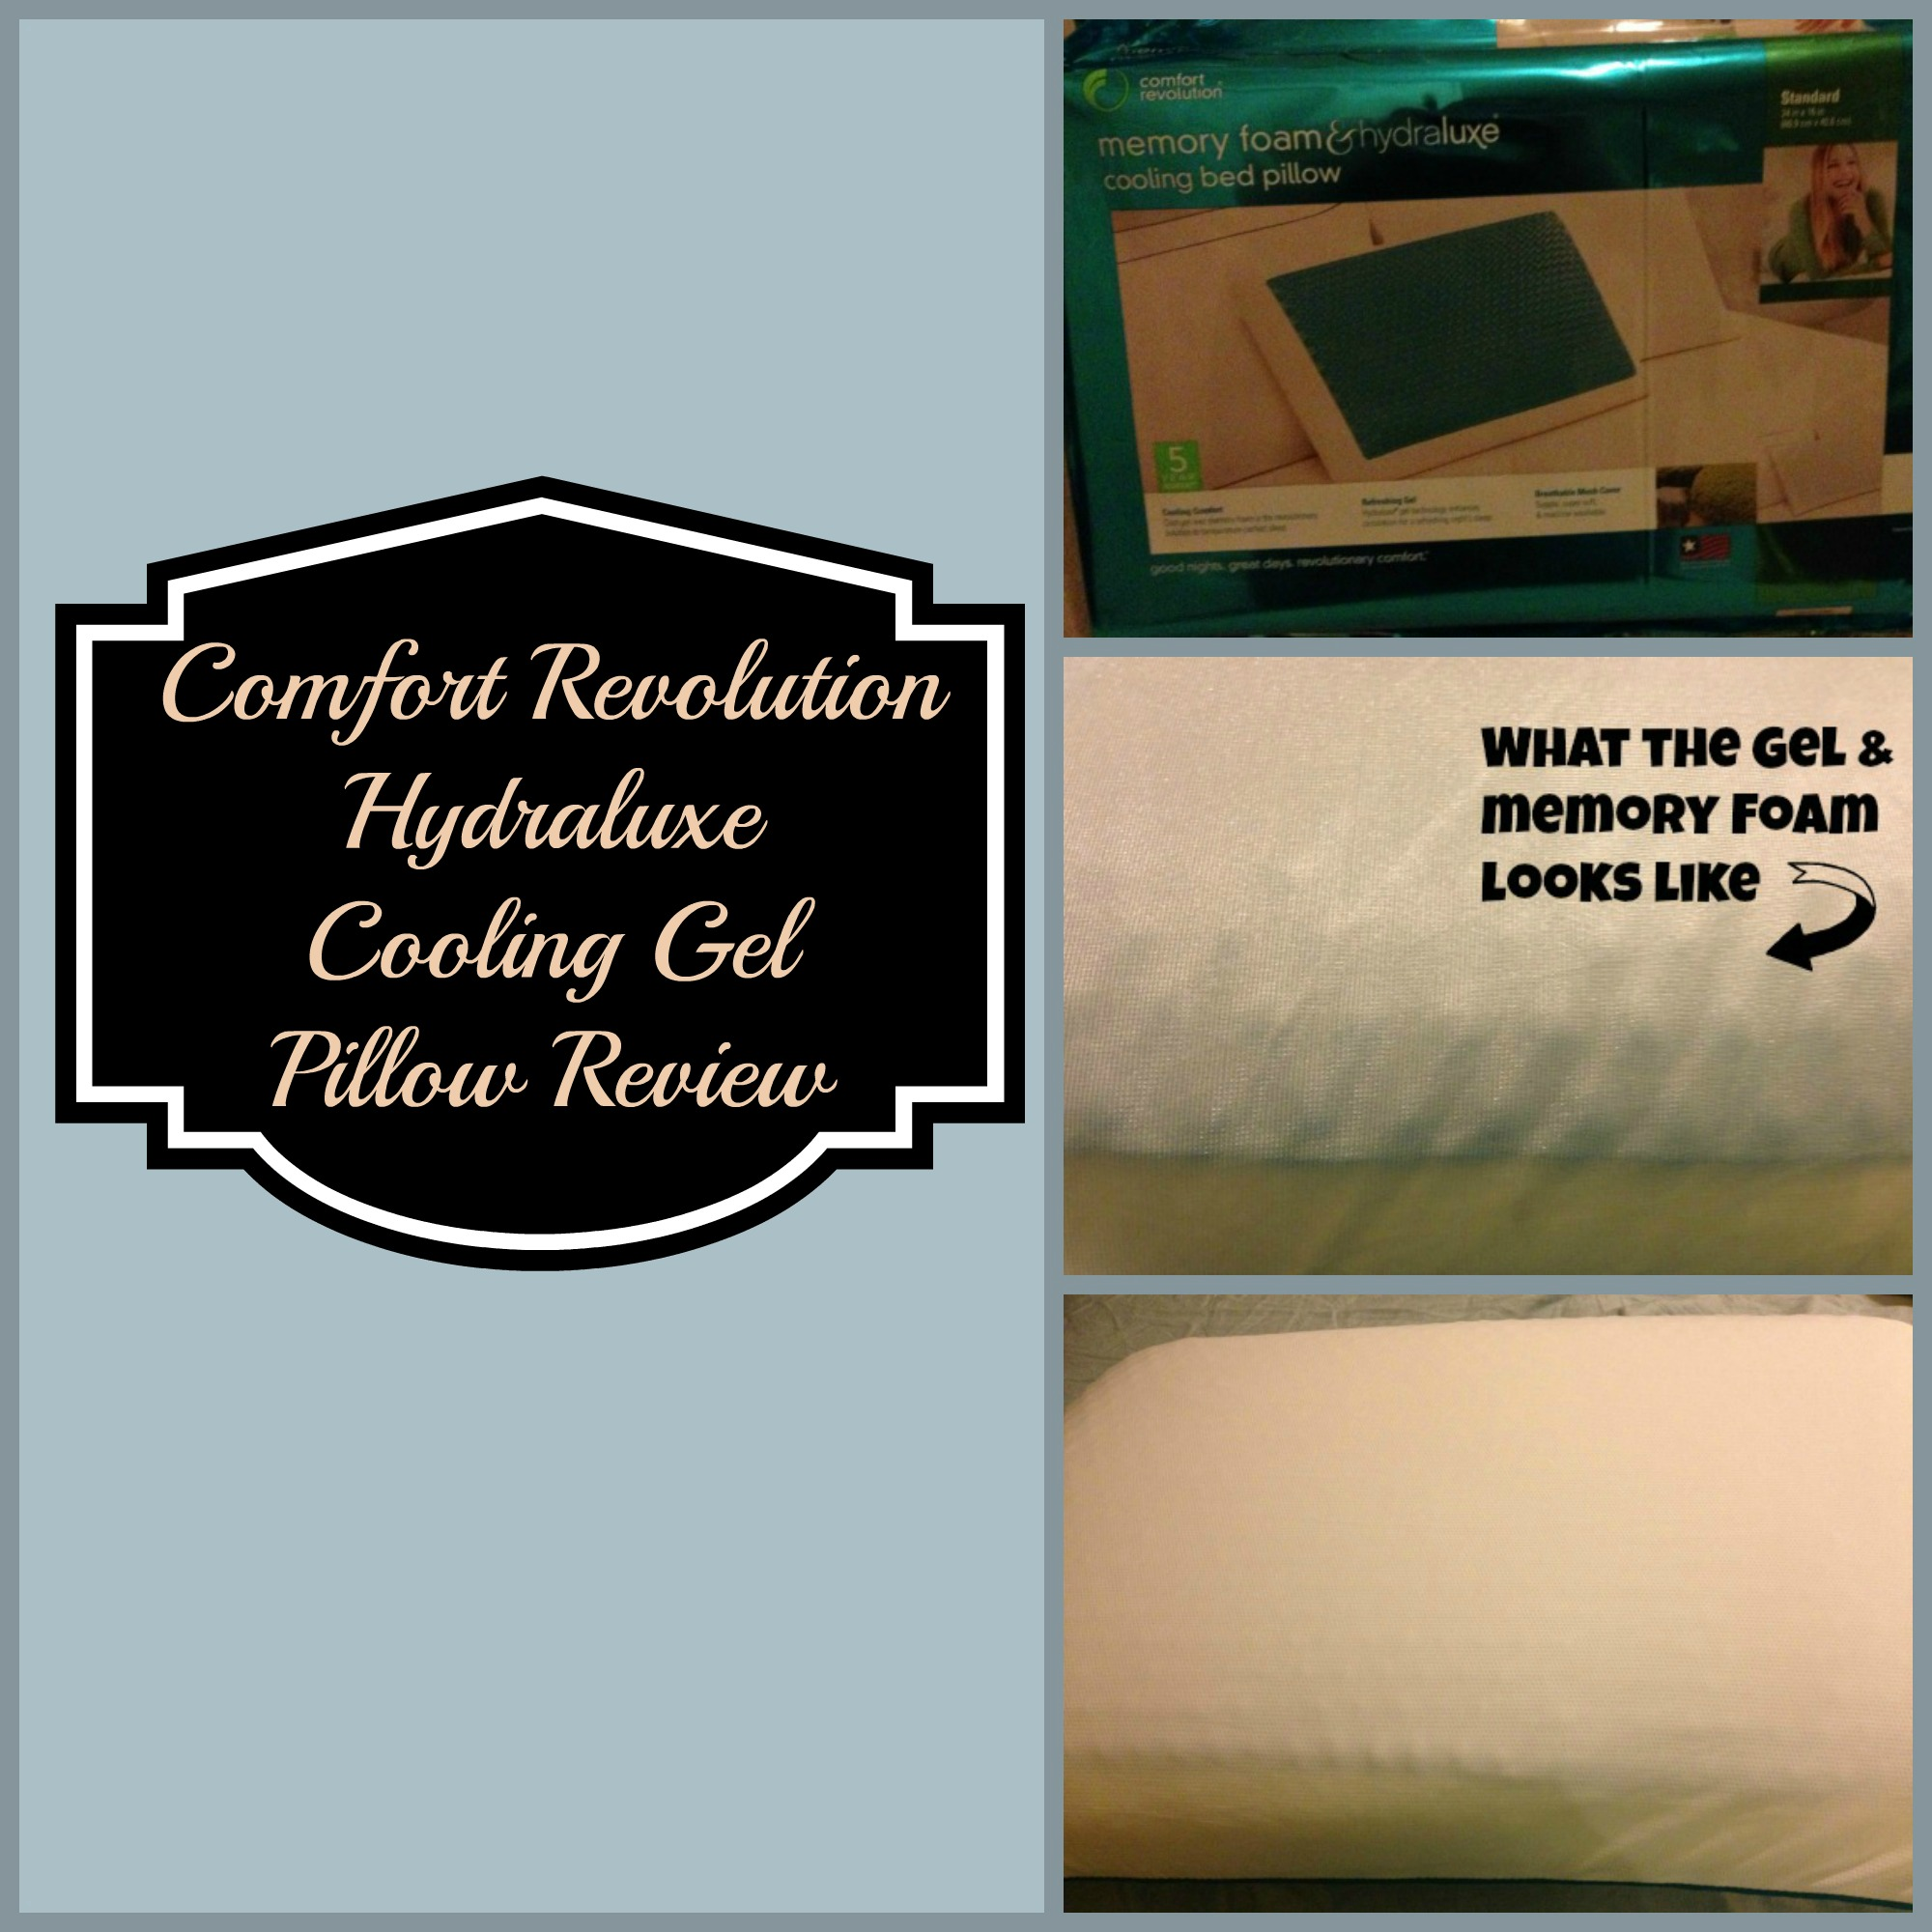 The Perfect Pillow Reviews Comfort Revolution Hydraluxe Cooling Gel Pillow Review